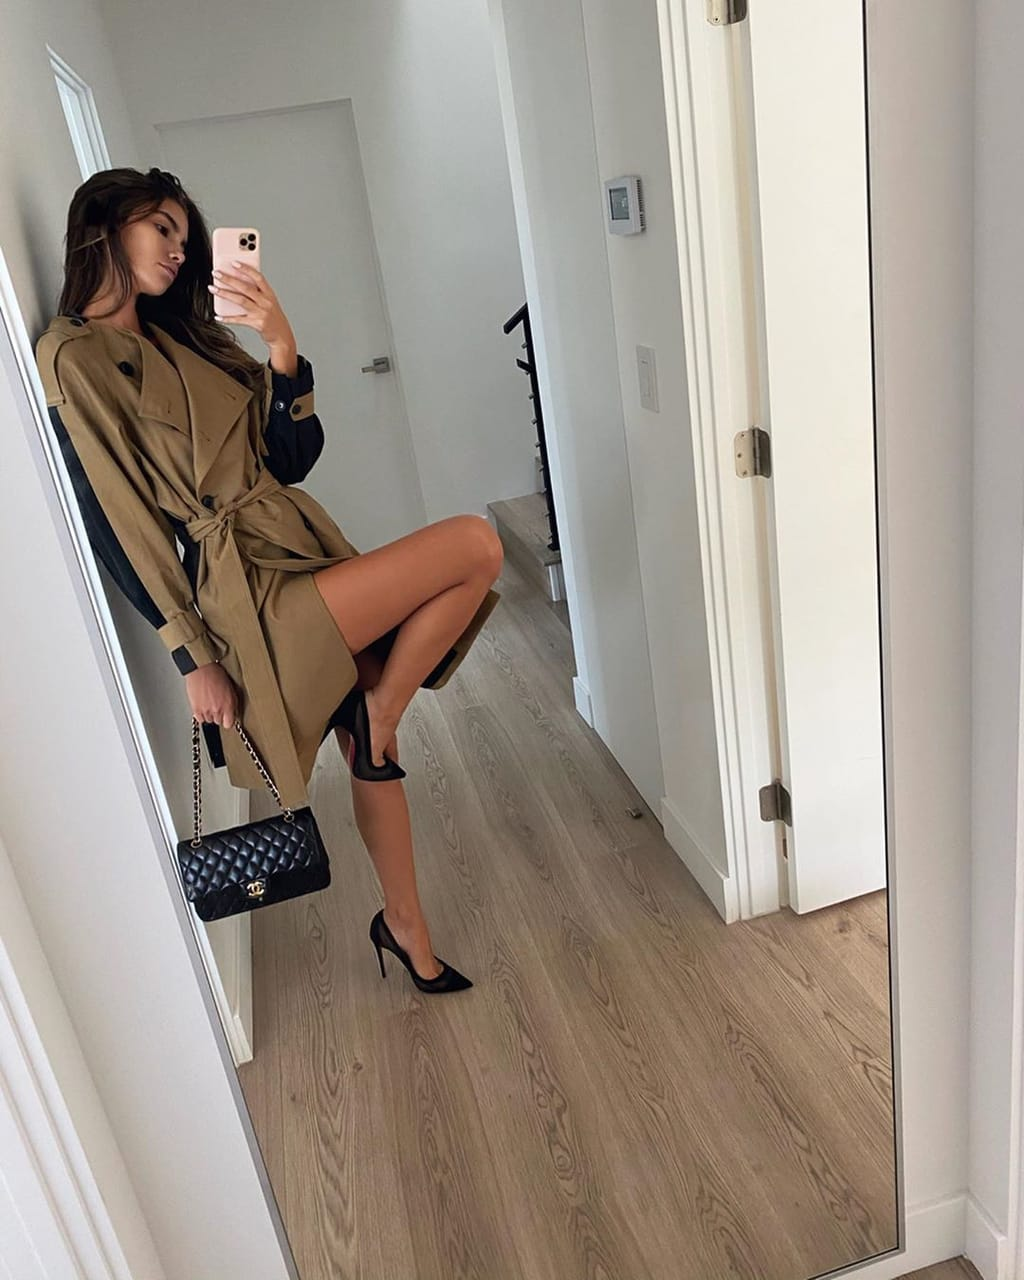 fashion and instagram image